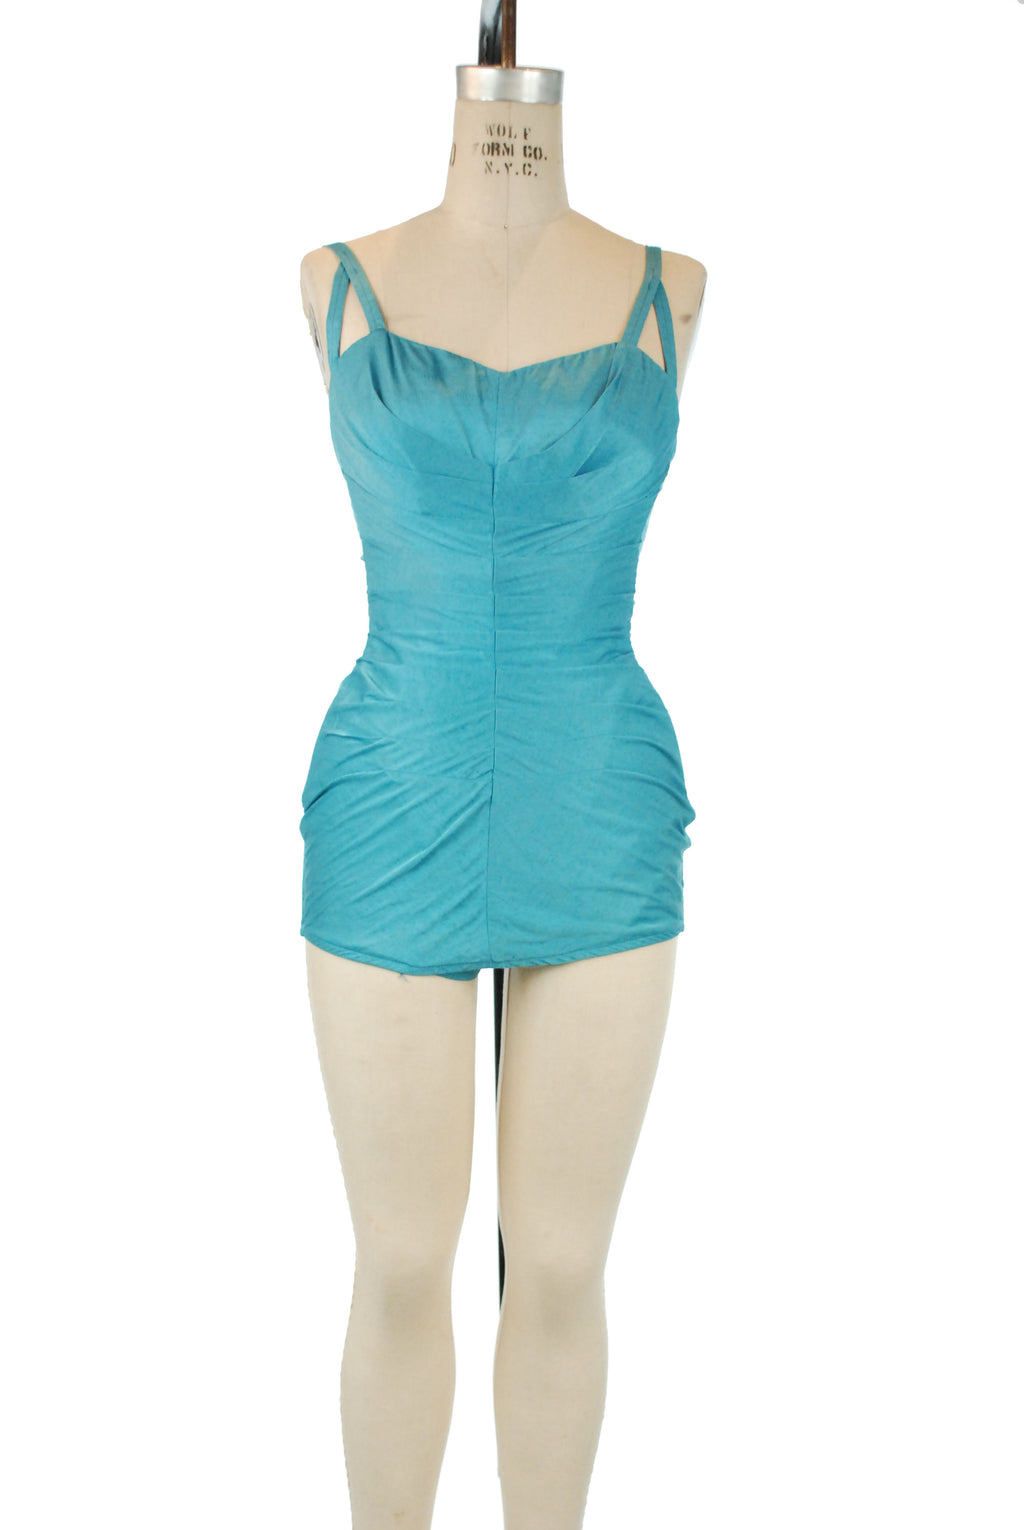 Bombshell Rose Marie Reid 1950s Draped Sheath Swimsuit in Bright Aqua